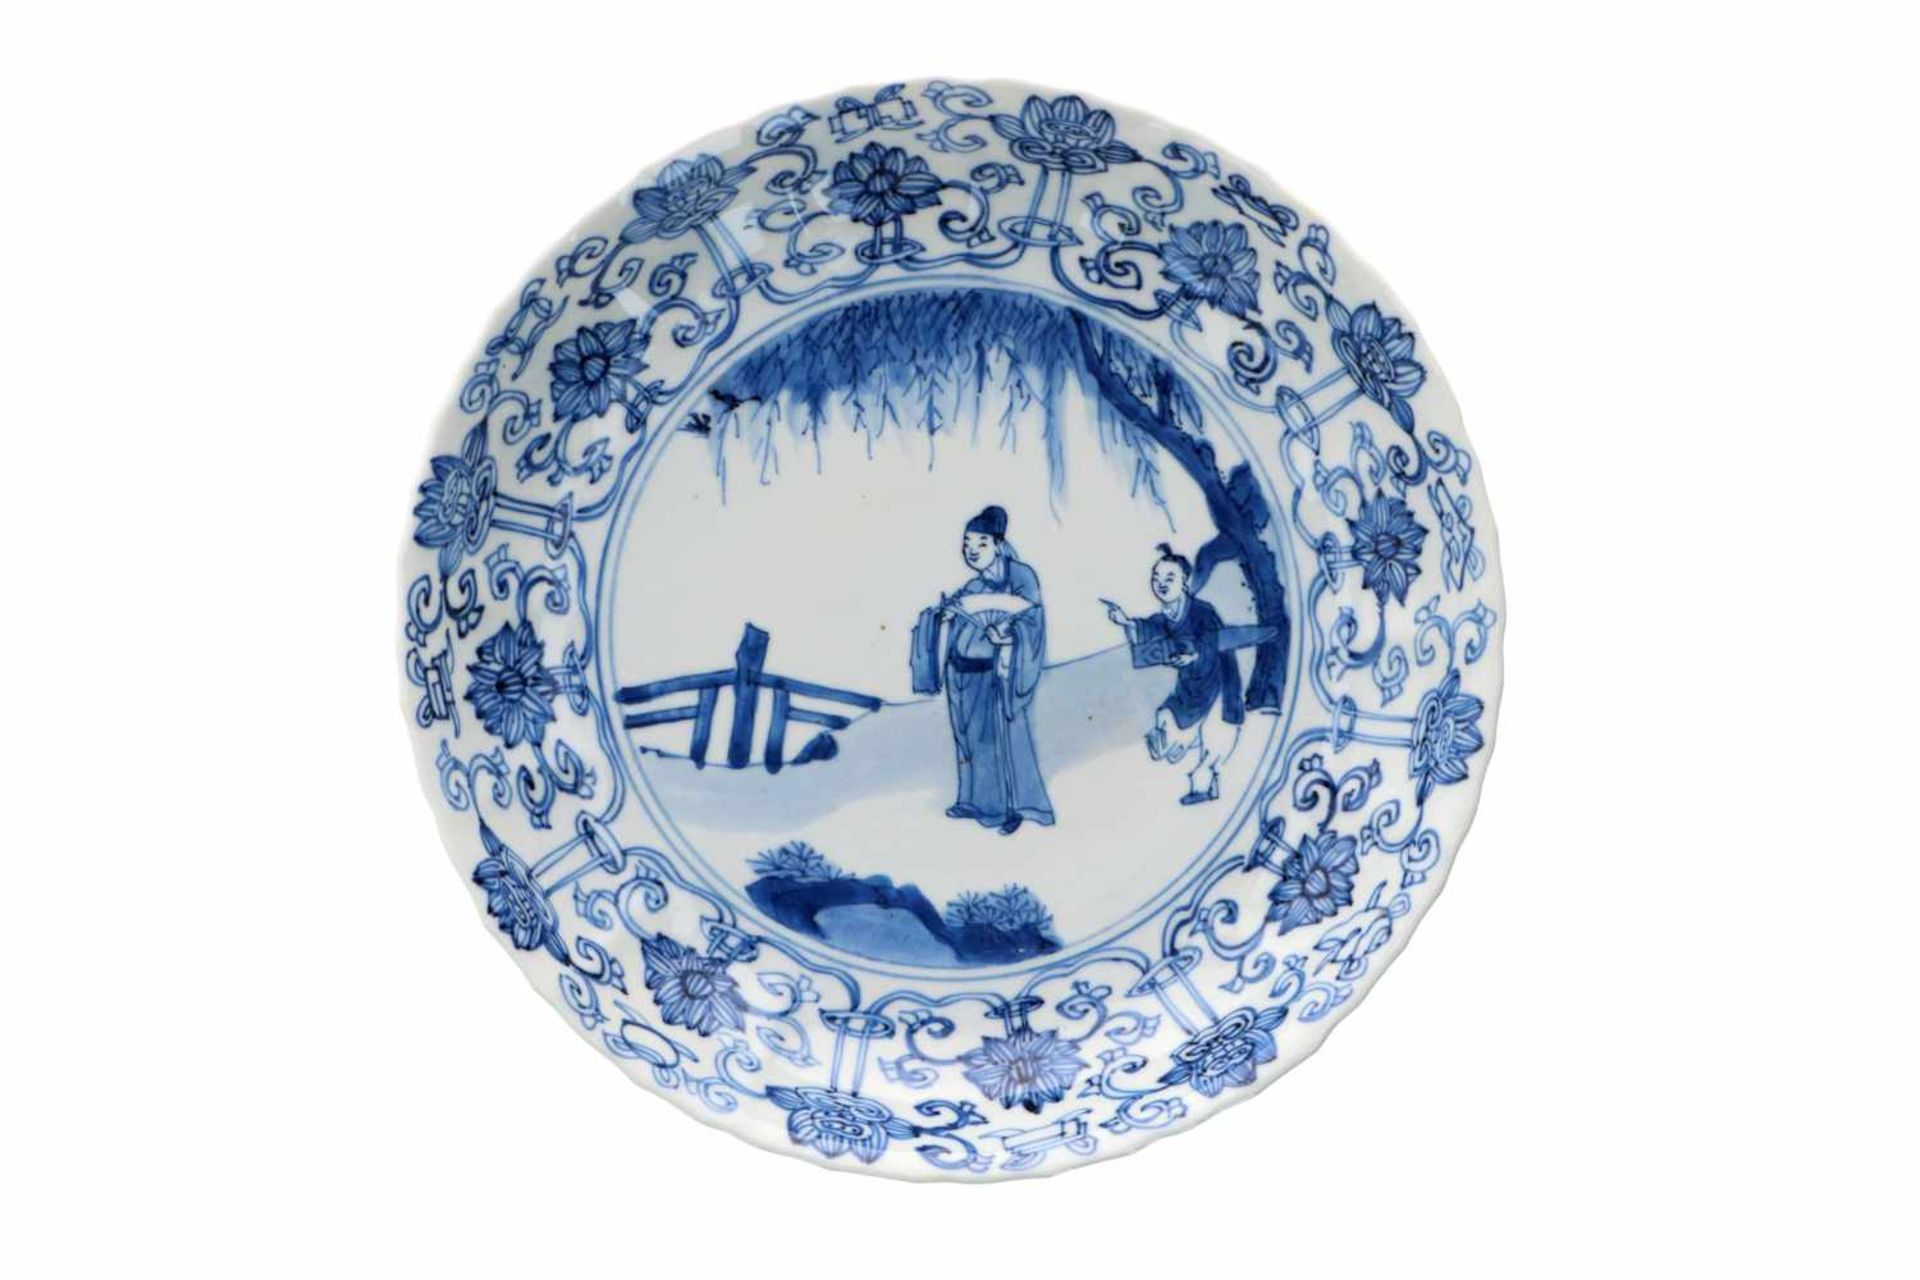 A lobed blue and white porcelain deep dish with scalloped rim, decorated with a dignitary and